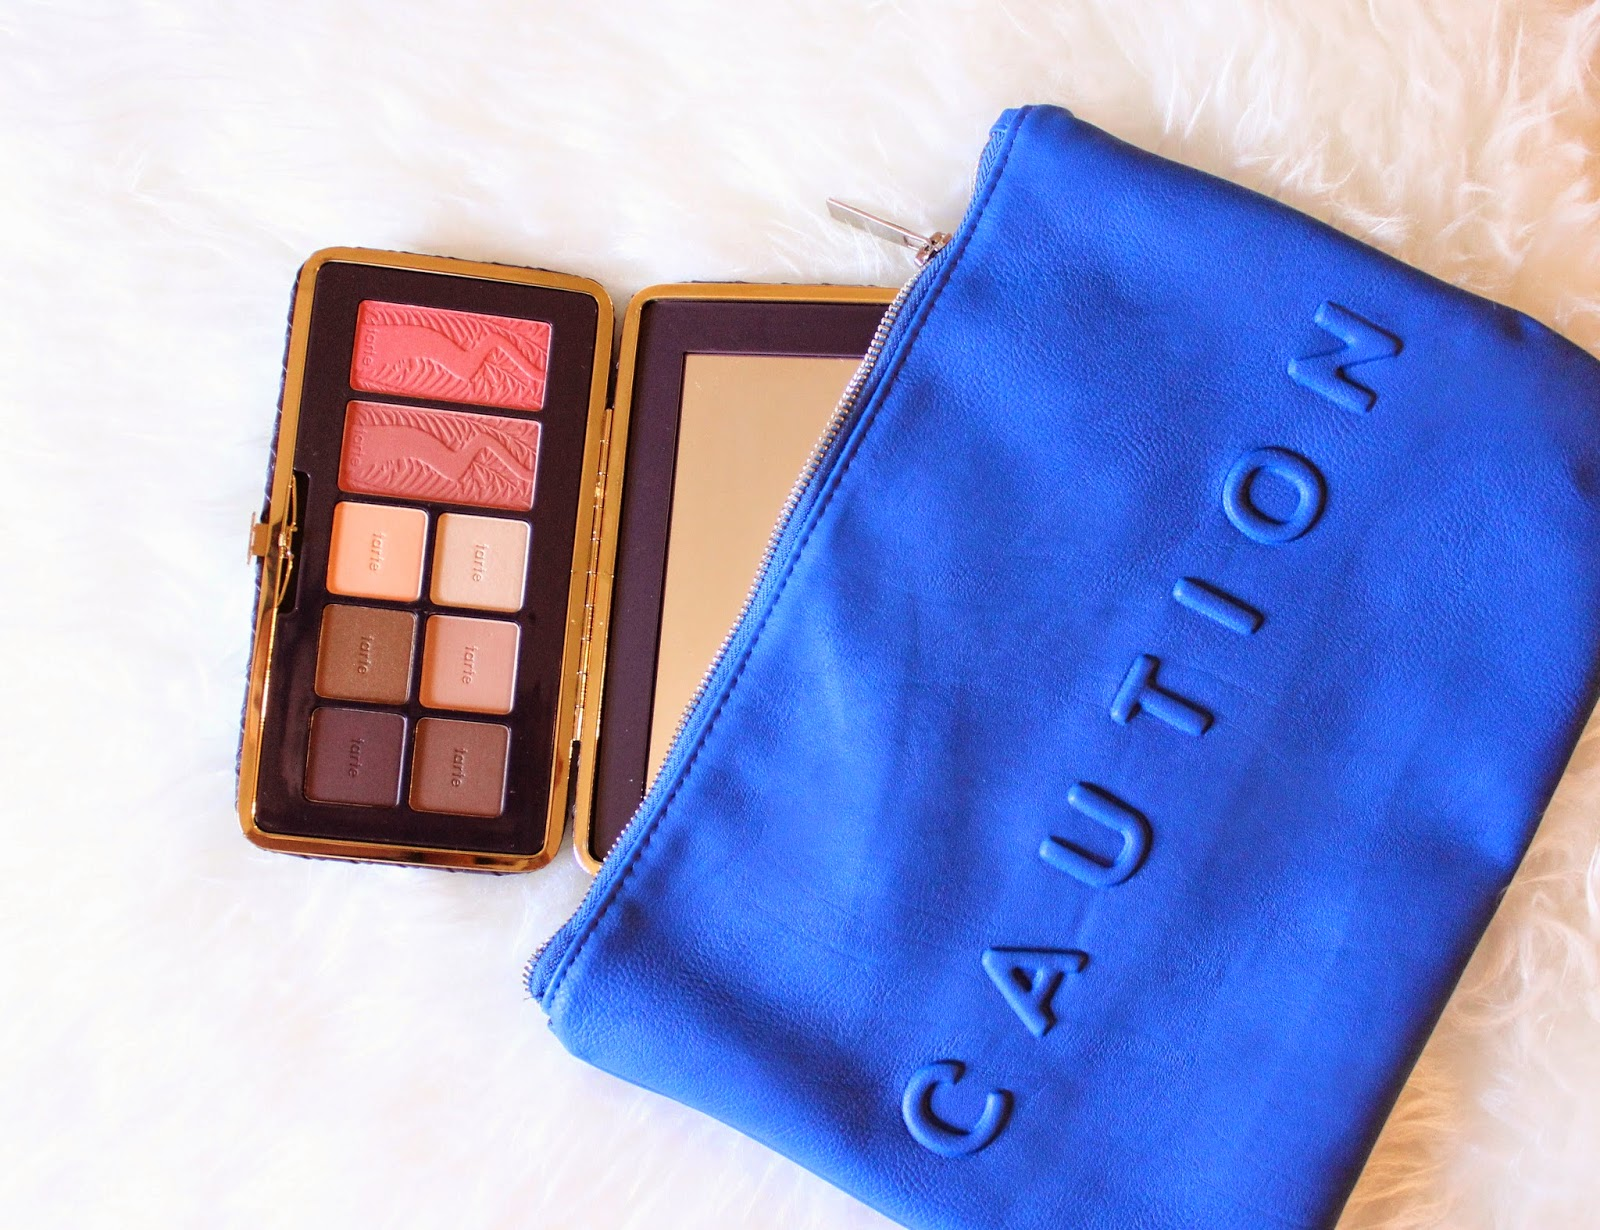 Tarte-Amazon-Escape-Palette-Review